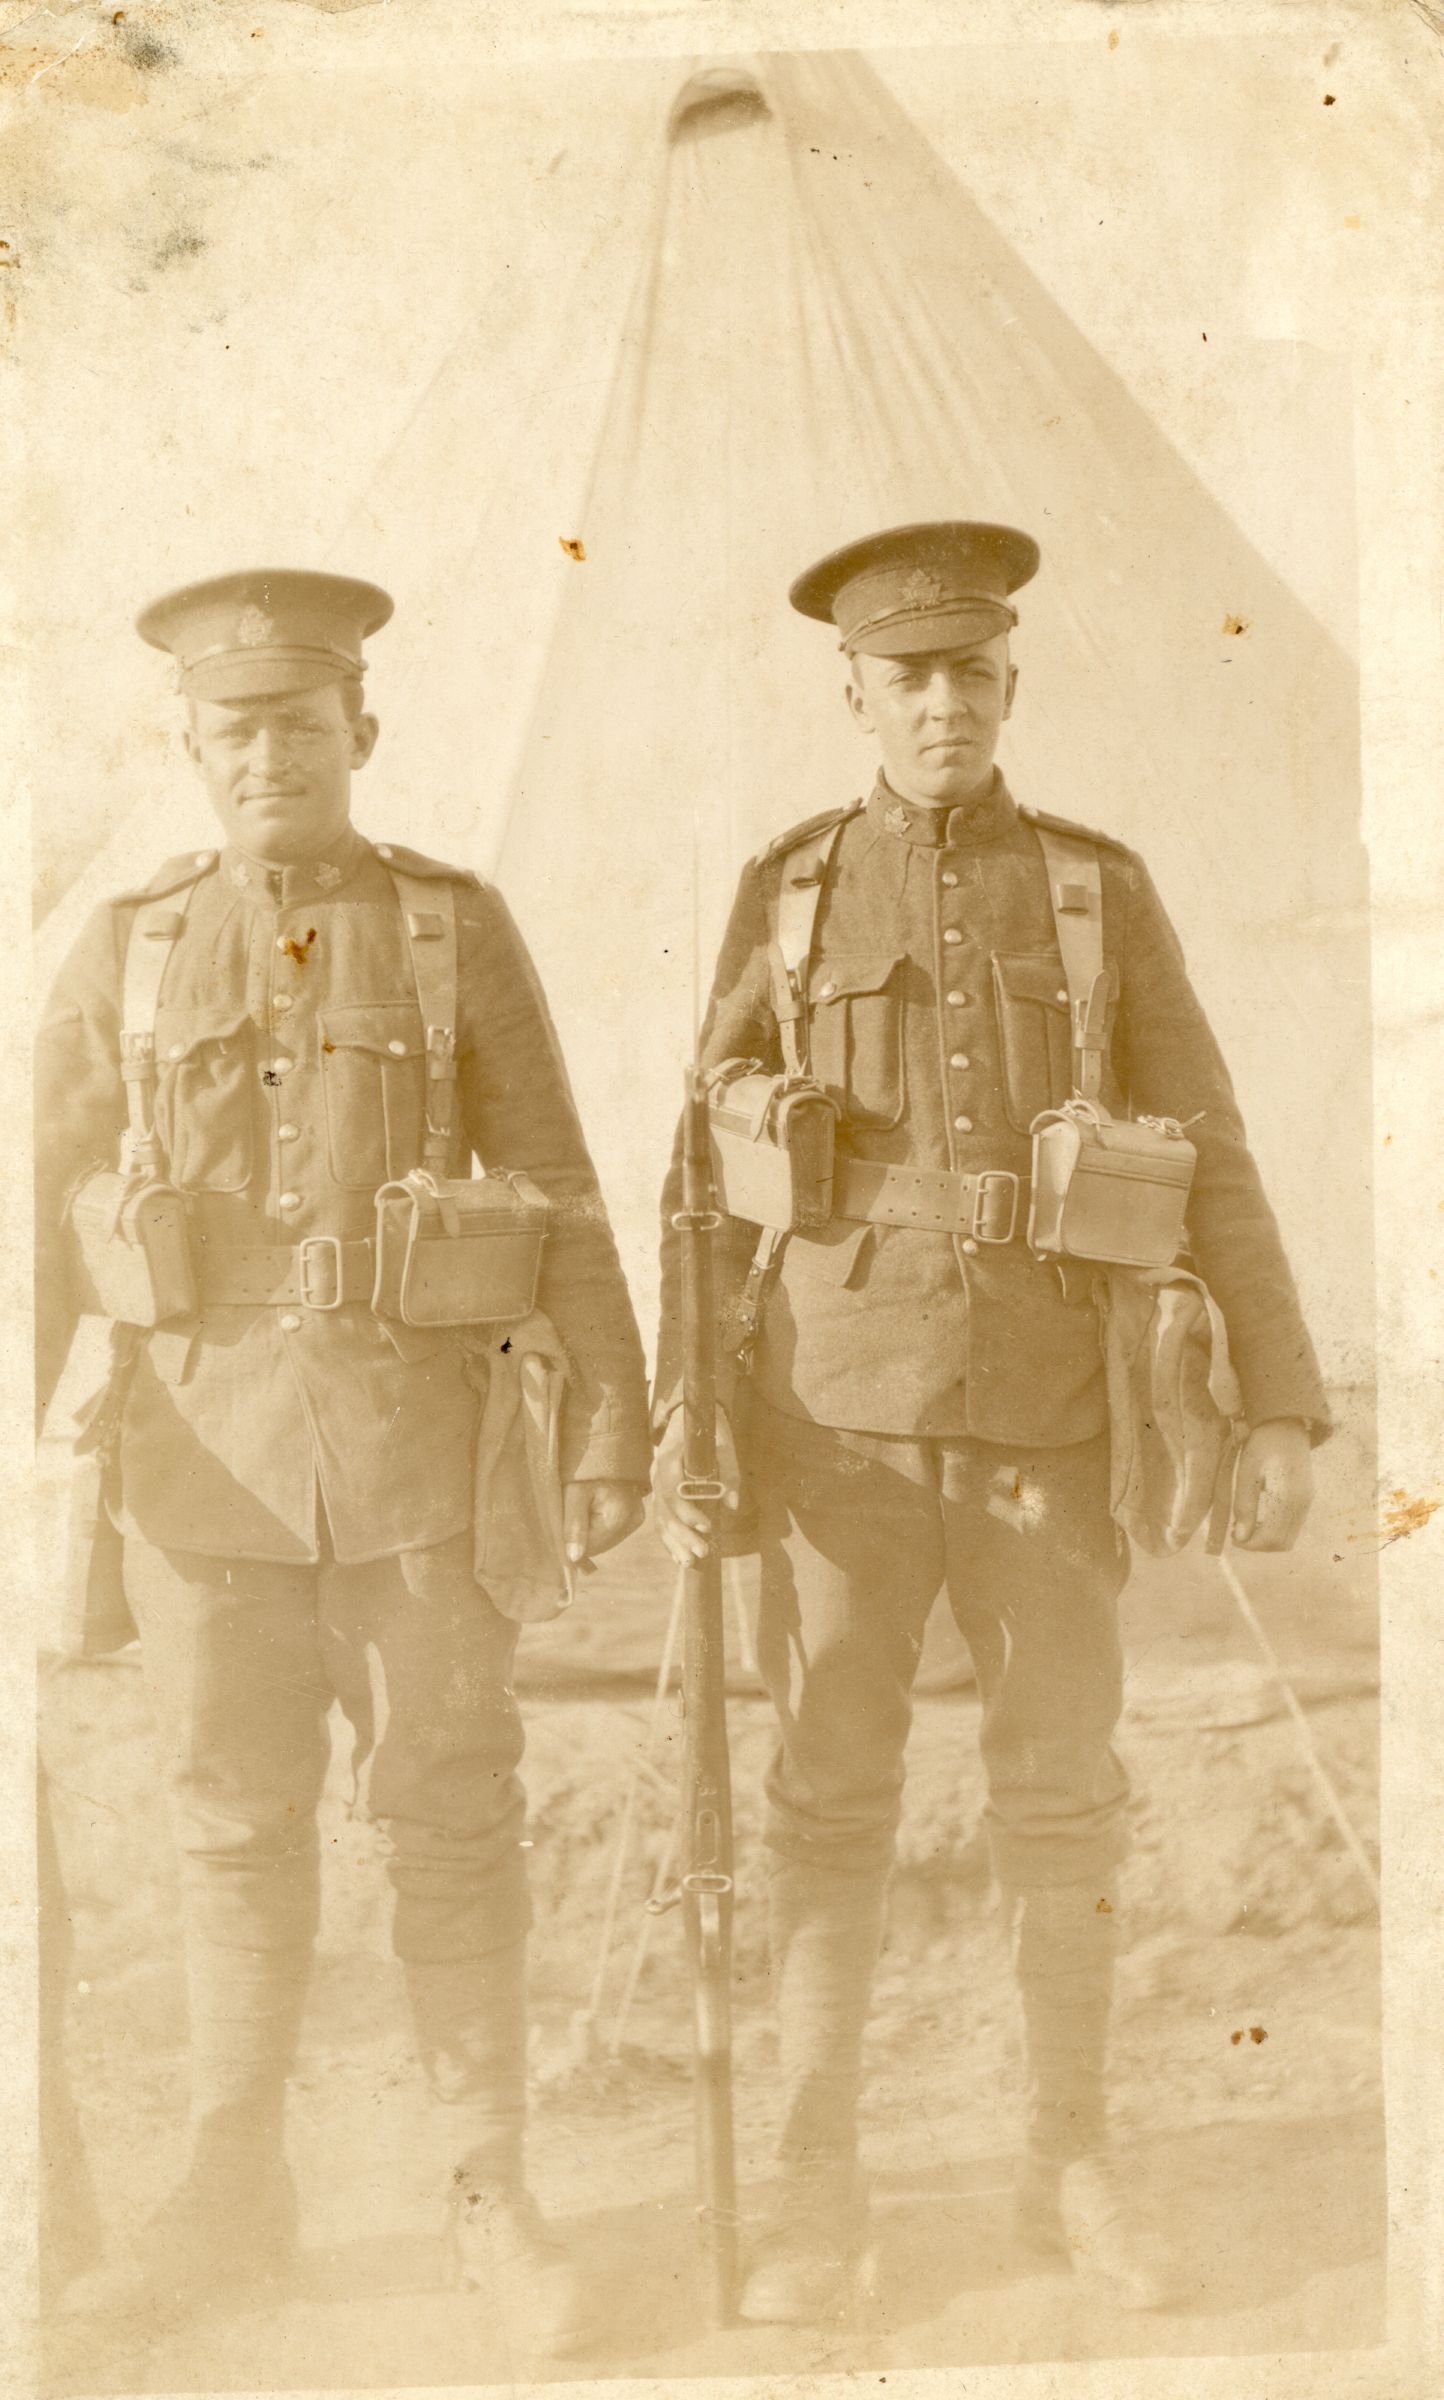 Photo of Patrick Smith – Patrick Lorne Smith of Campbellton NB is on the RIGHT in this photo.  He died of wounds sustained at Battle of Vimy Ridge.